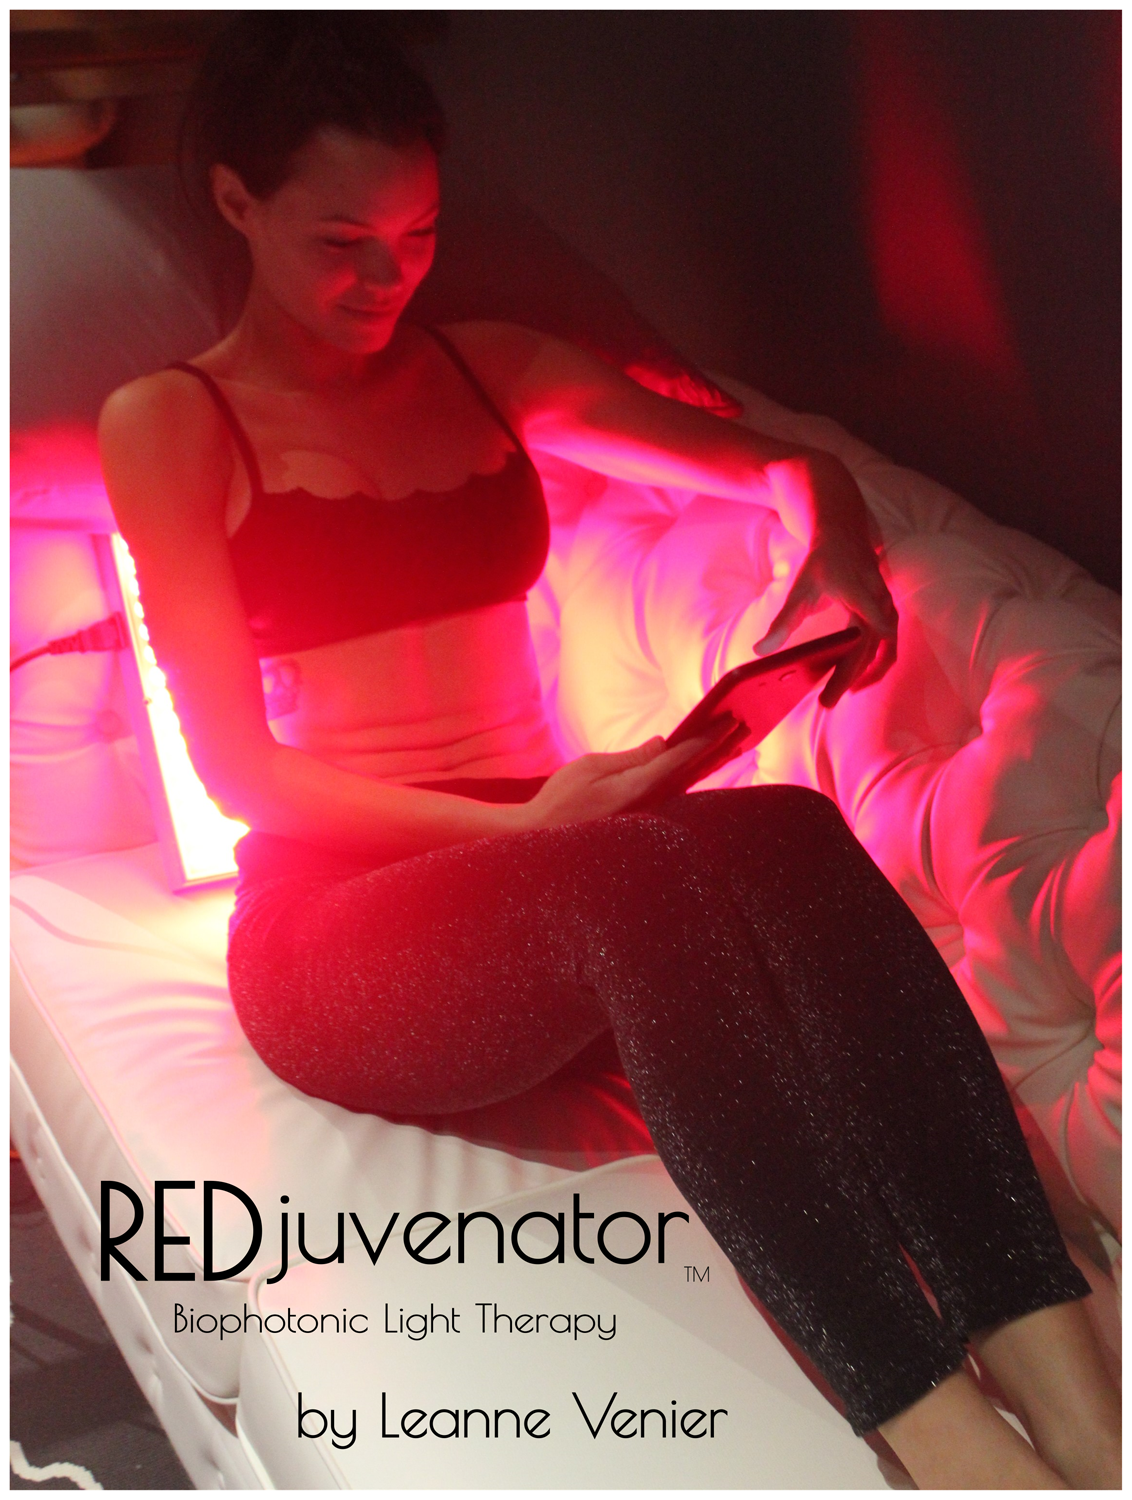 Leanne Venier's REDJuvenator Red Light Therapy & Near Infrared Biophotonic Light Therapy